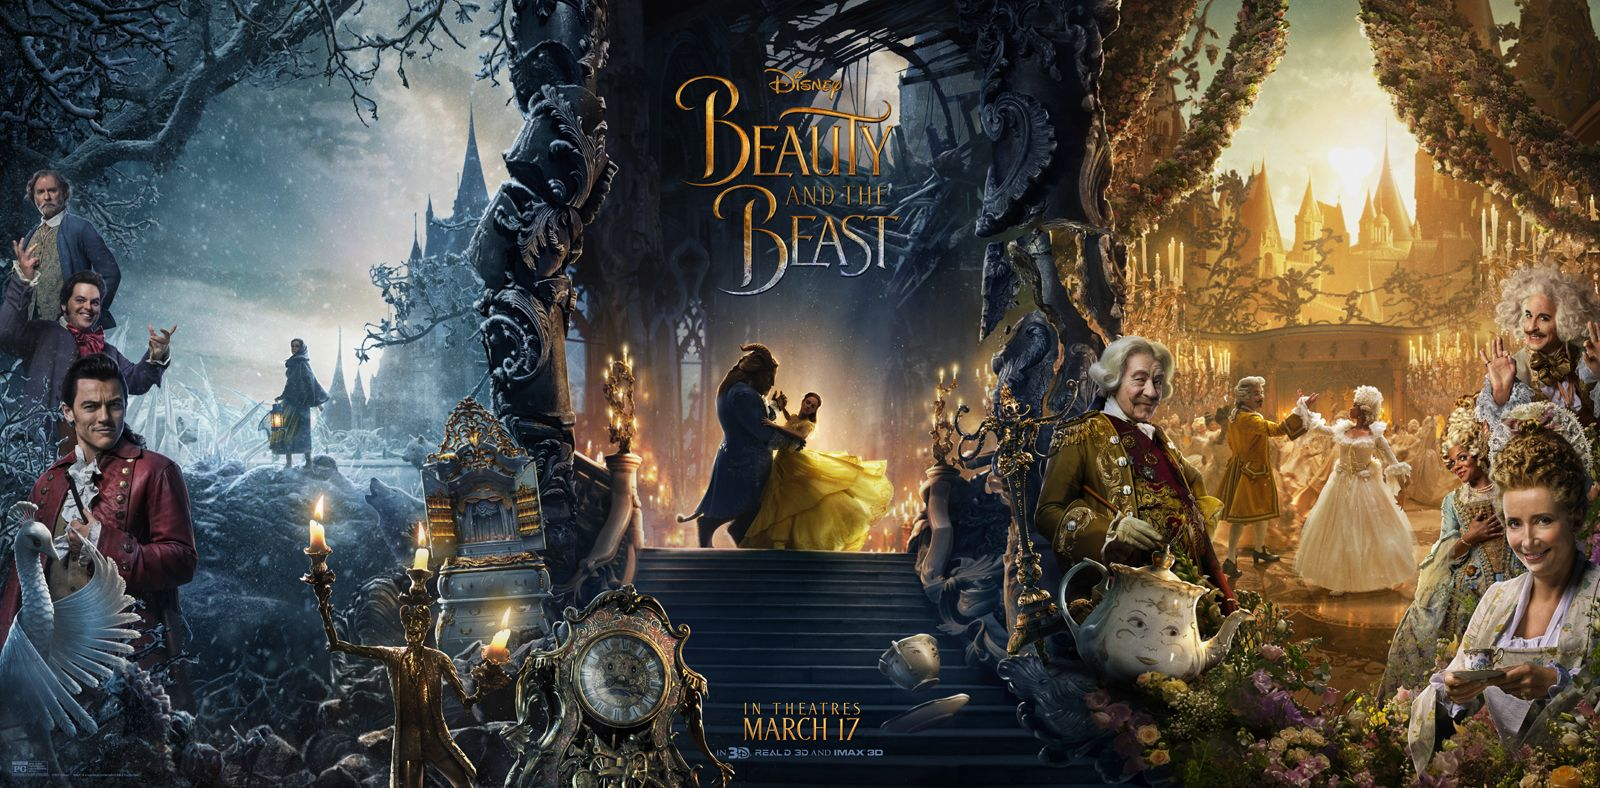 WATCH: 'Beauty and the Beast' – The Final Trailer